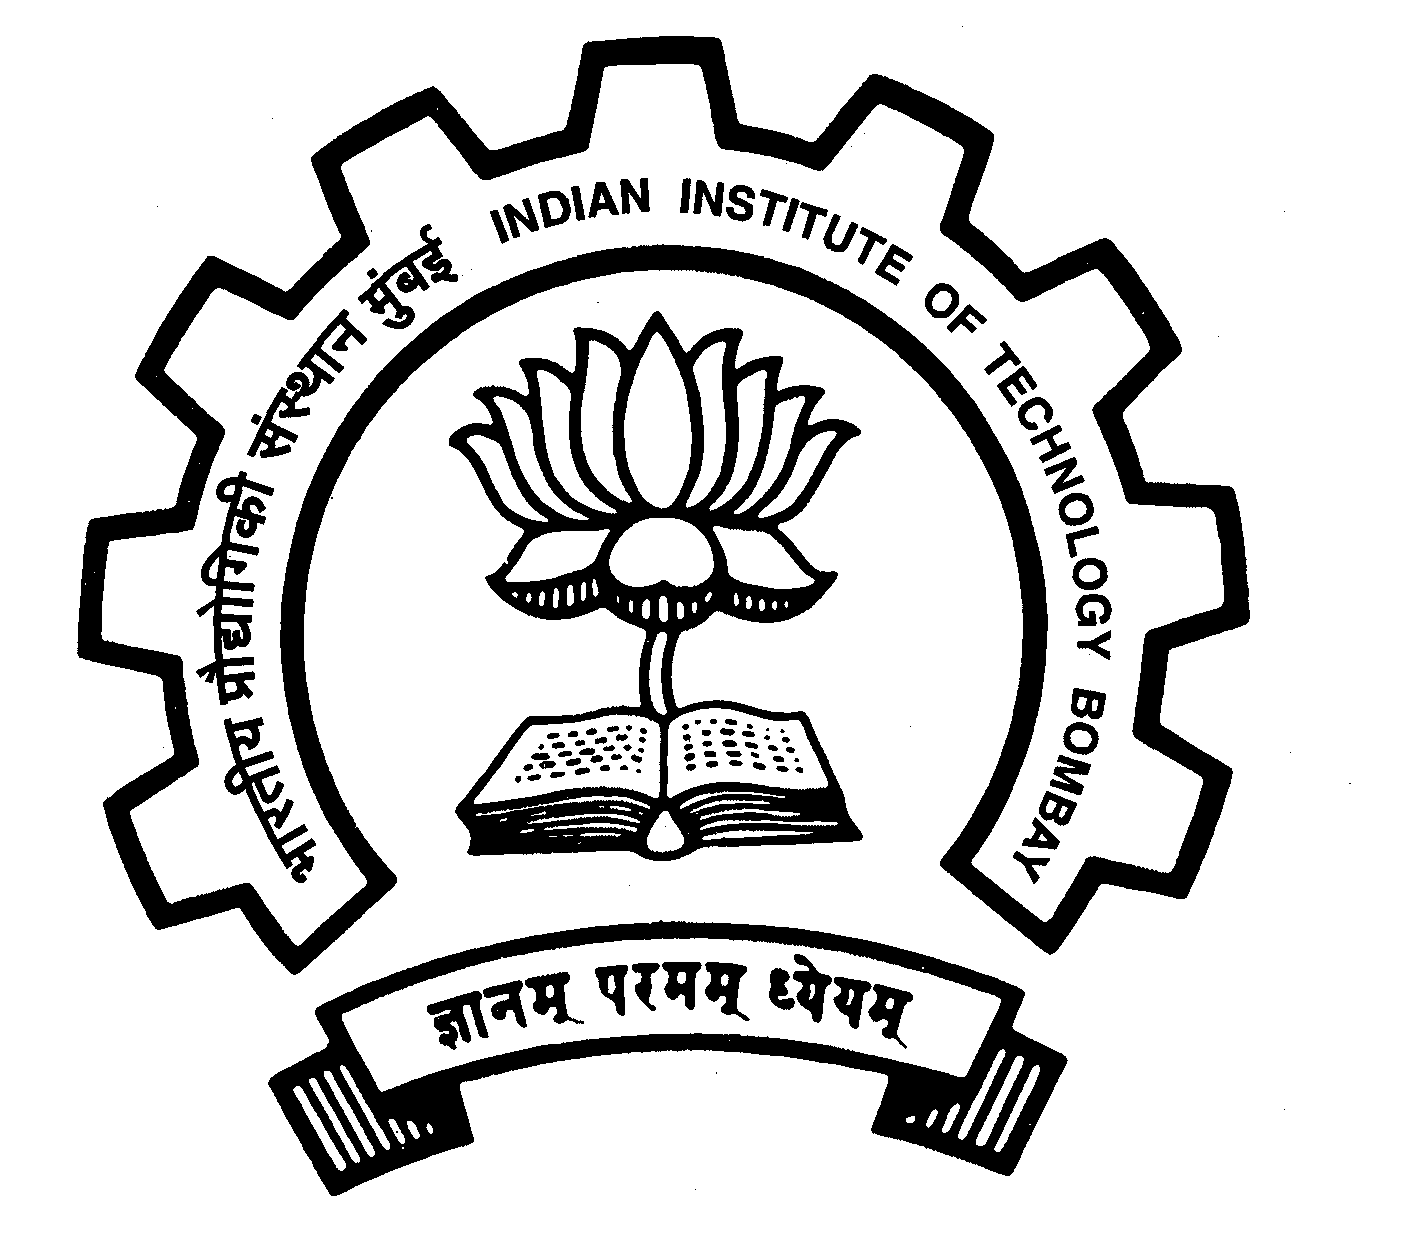 IIT Bombay placed 60 % of students in first round of Campus selection